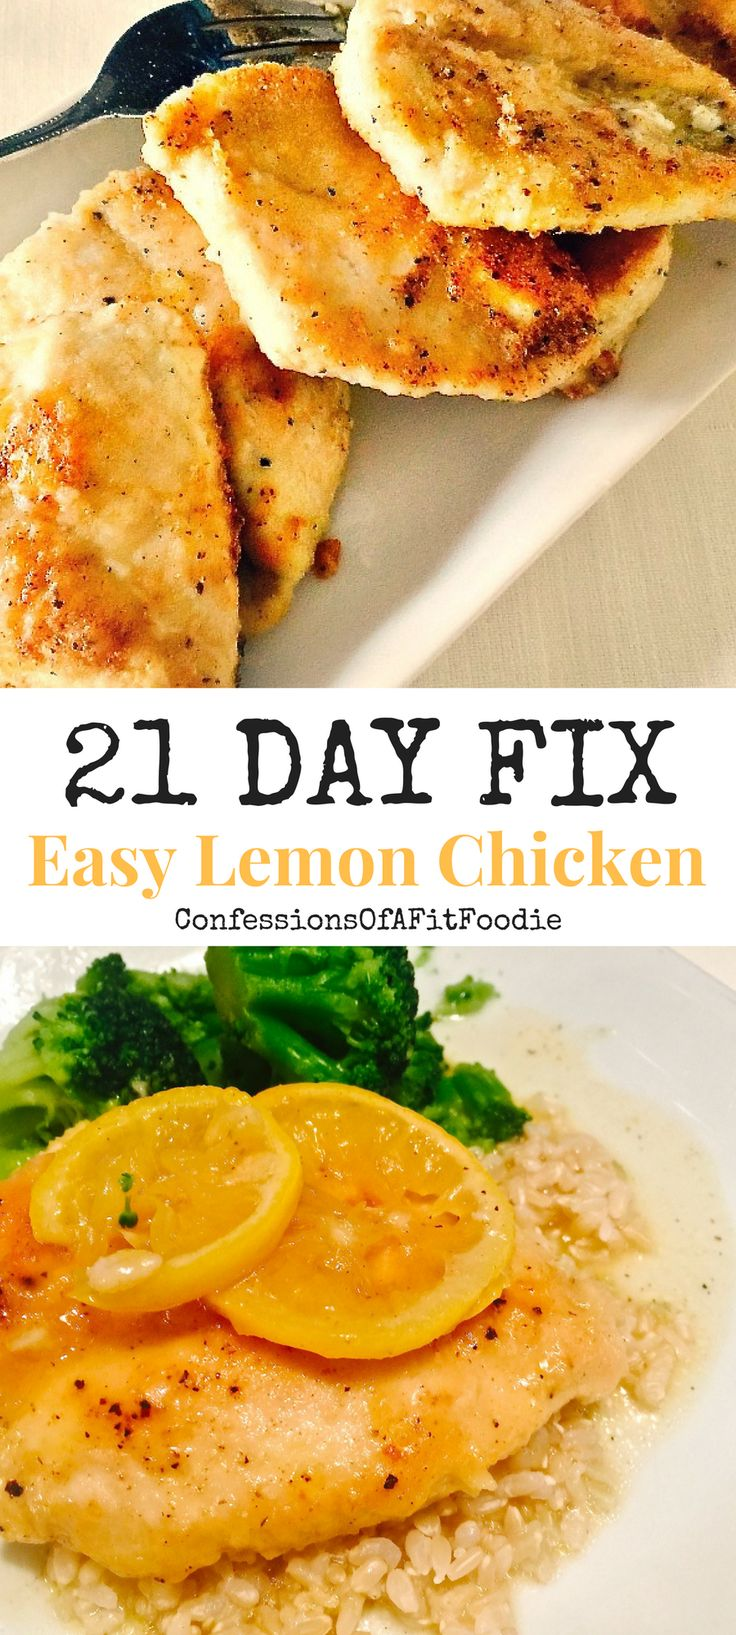 21 Day Fix Easy Lemon Chicken from Confessions of a Fit Foodie